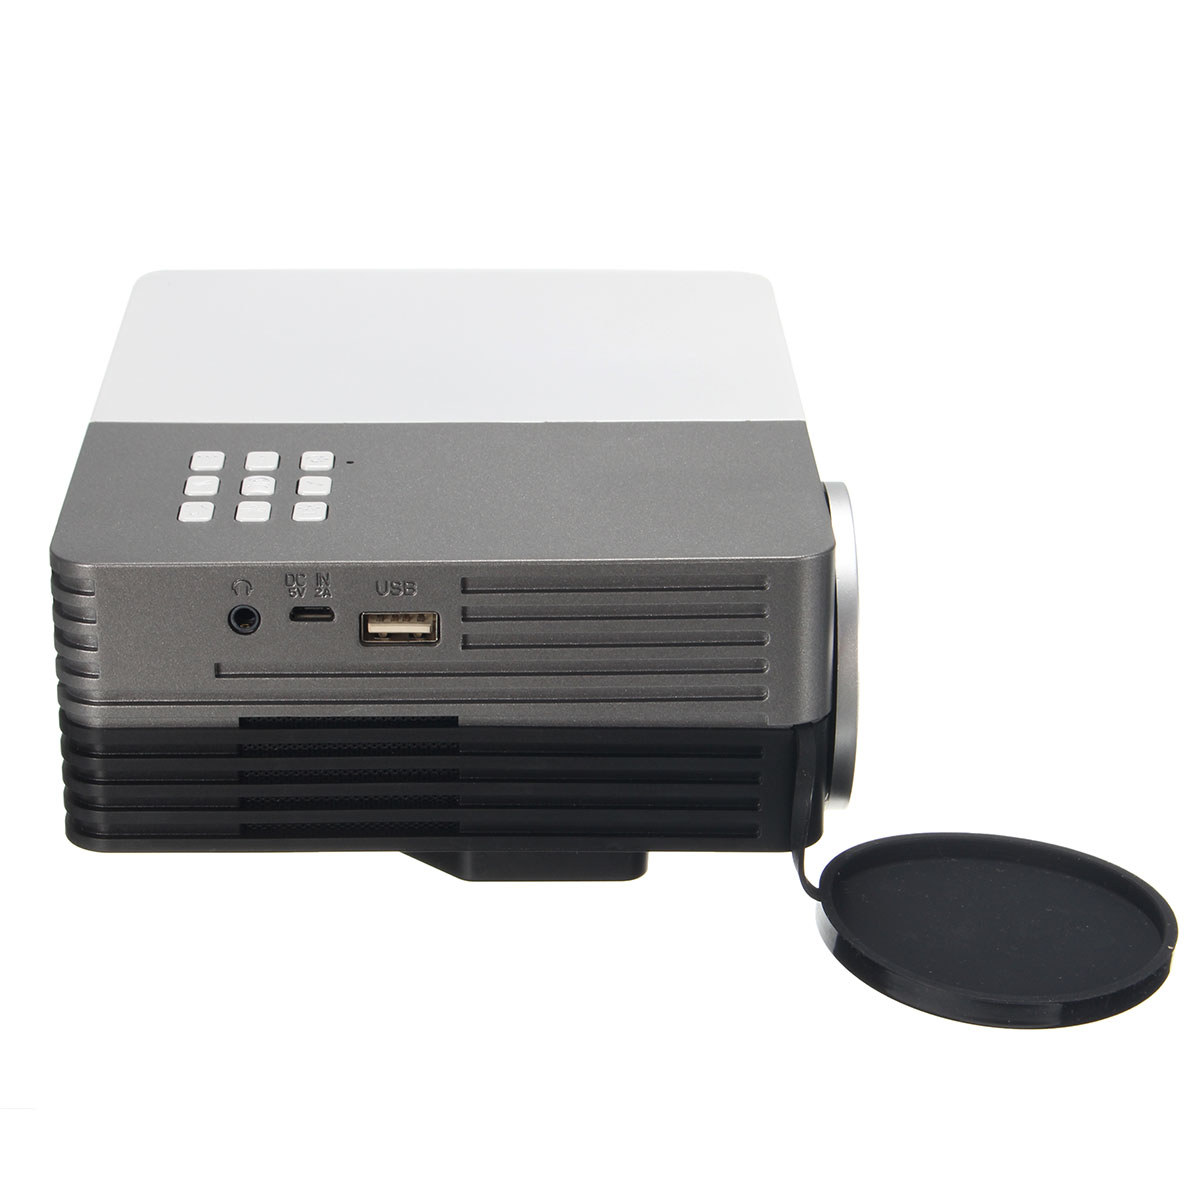 Gm50 1080p portable mini led vga 3d projector 150 lumens for Portable movie projector